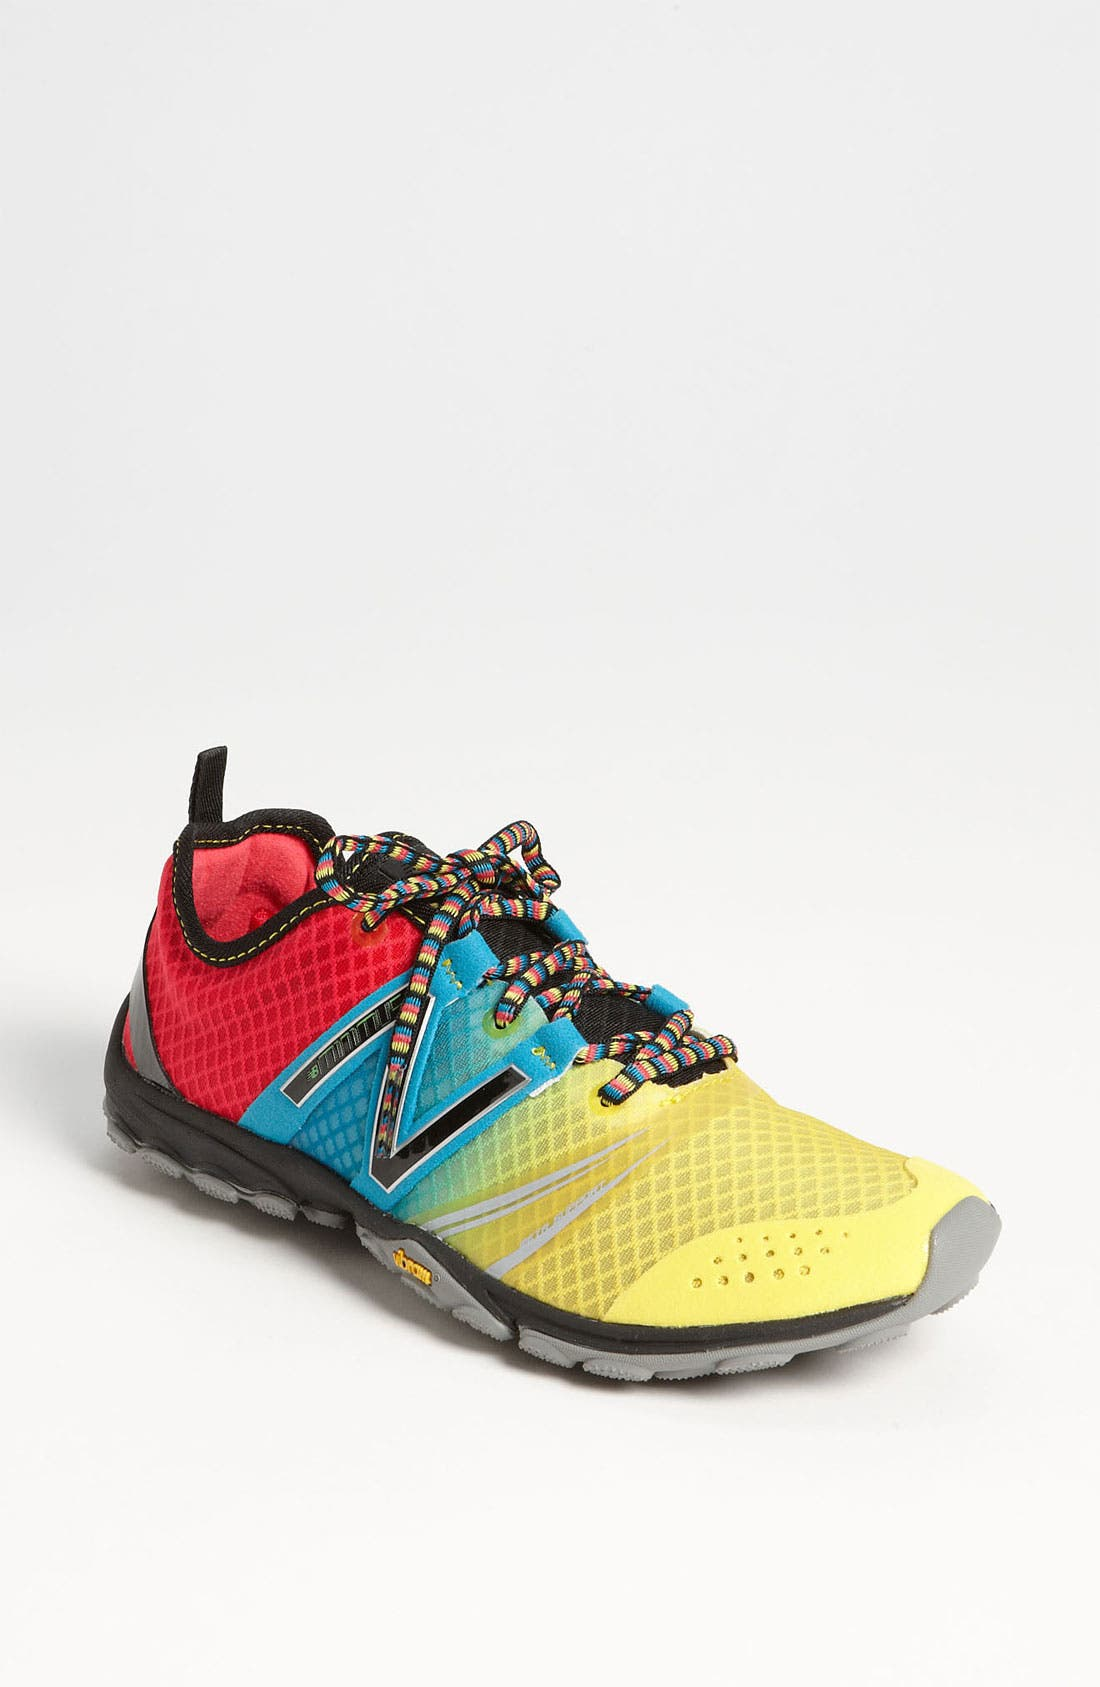 Alternate Image 1 Selected - New Balance 'Minimus 20 Trail' Running Shoe (Women)